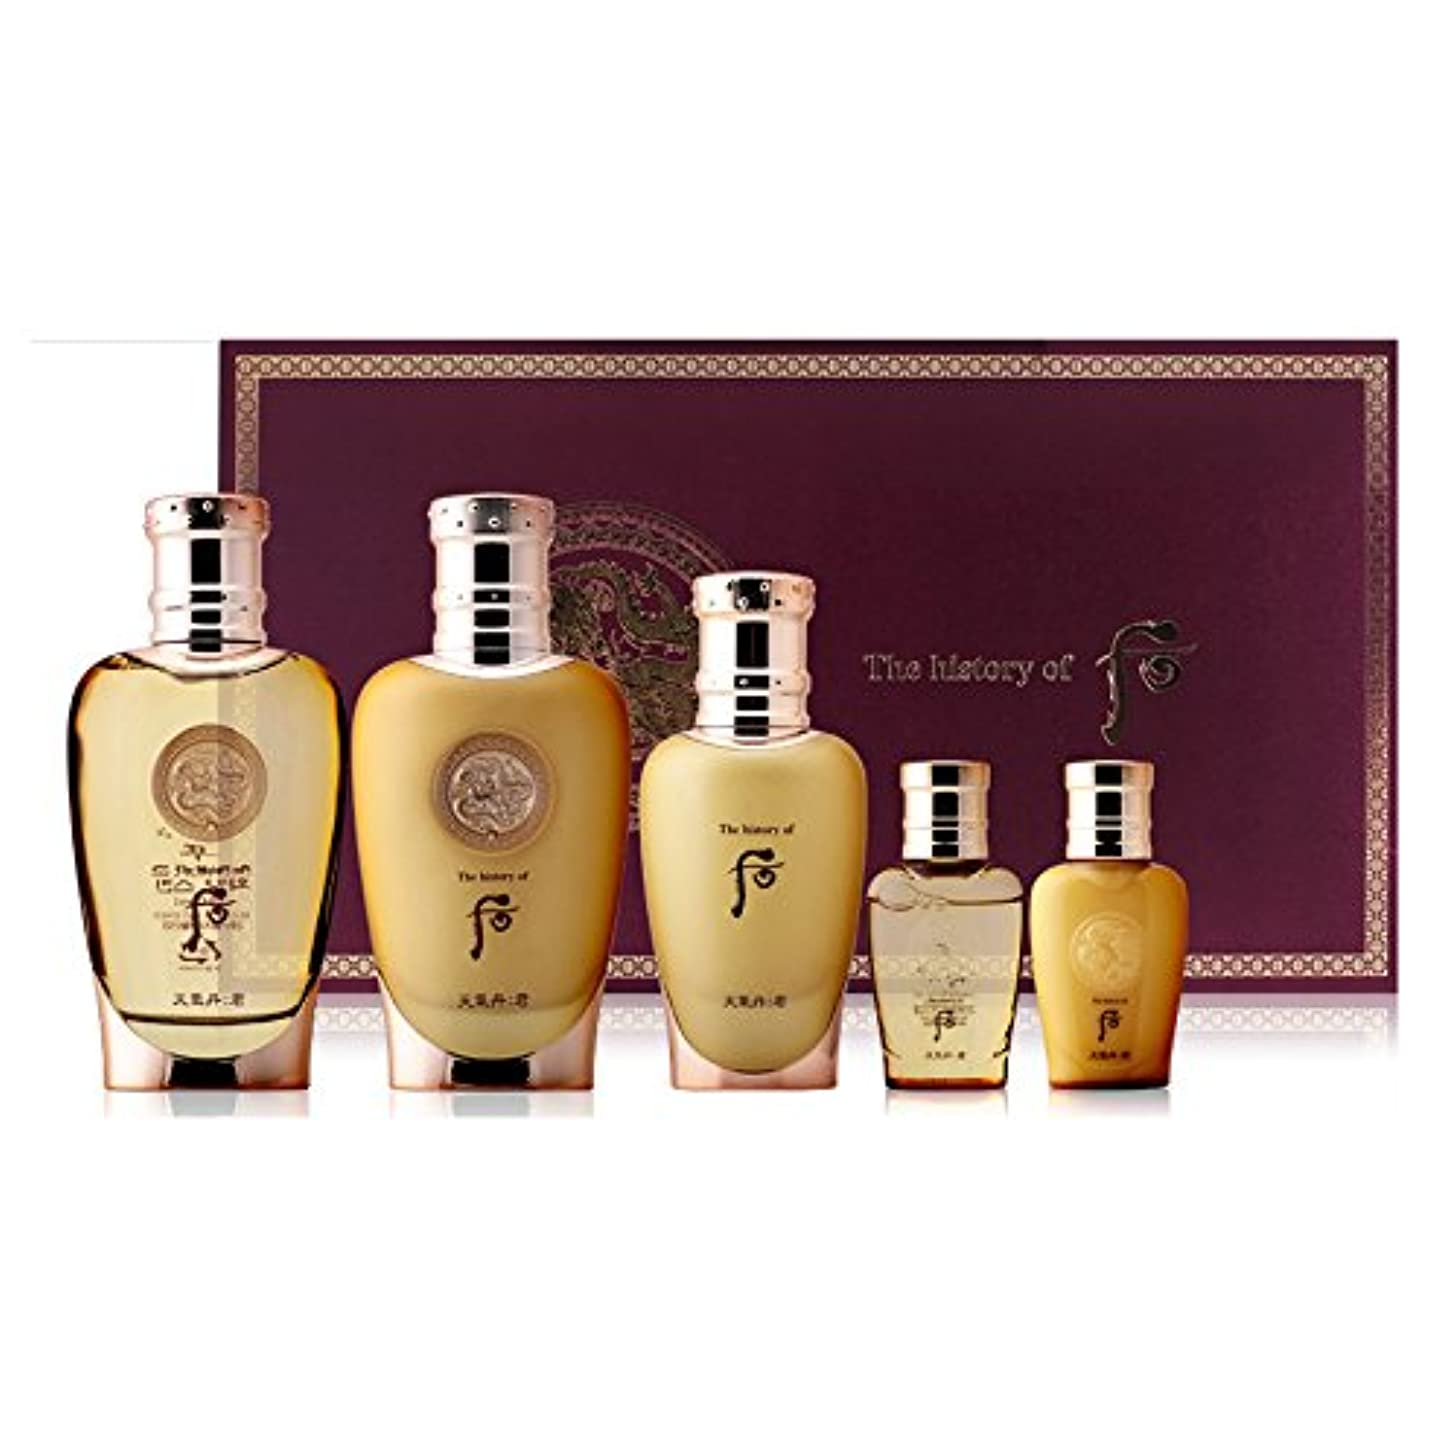 [The History Of Whoo] Whoo 后(フー) CHUNKIDAN GUN HWAYANG For Men 3 Special Set/チョンギダン群君セット(華陽3種企画セット) + Sample Gift...